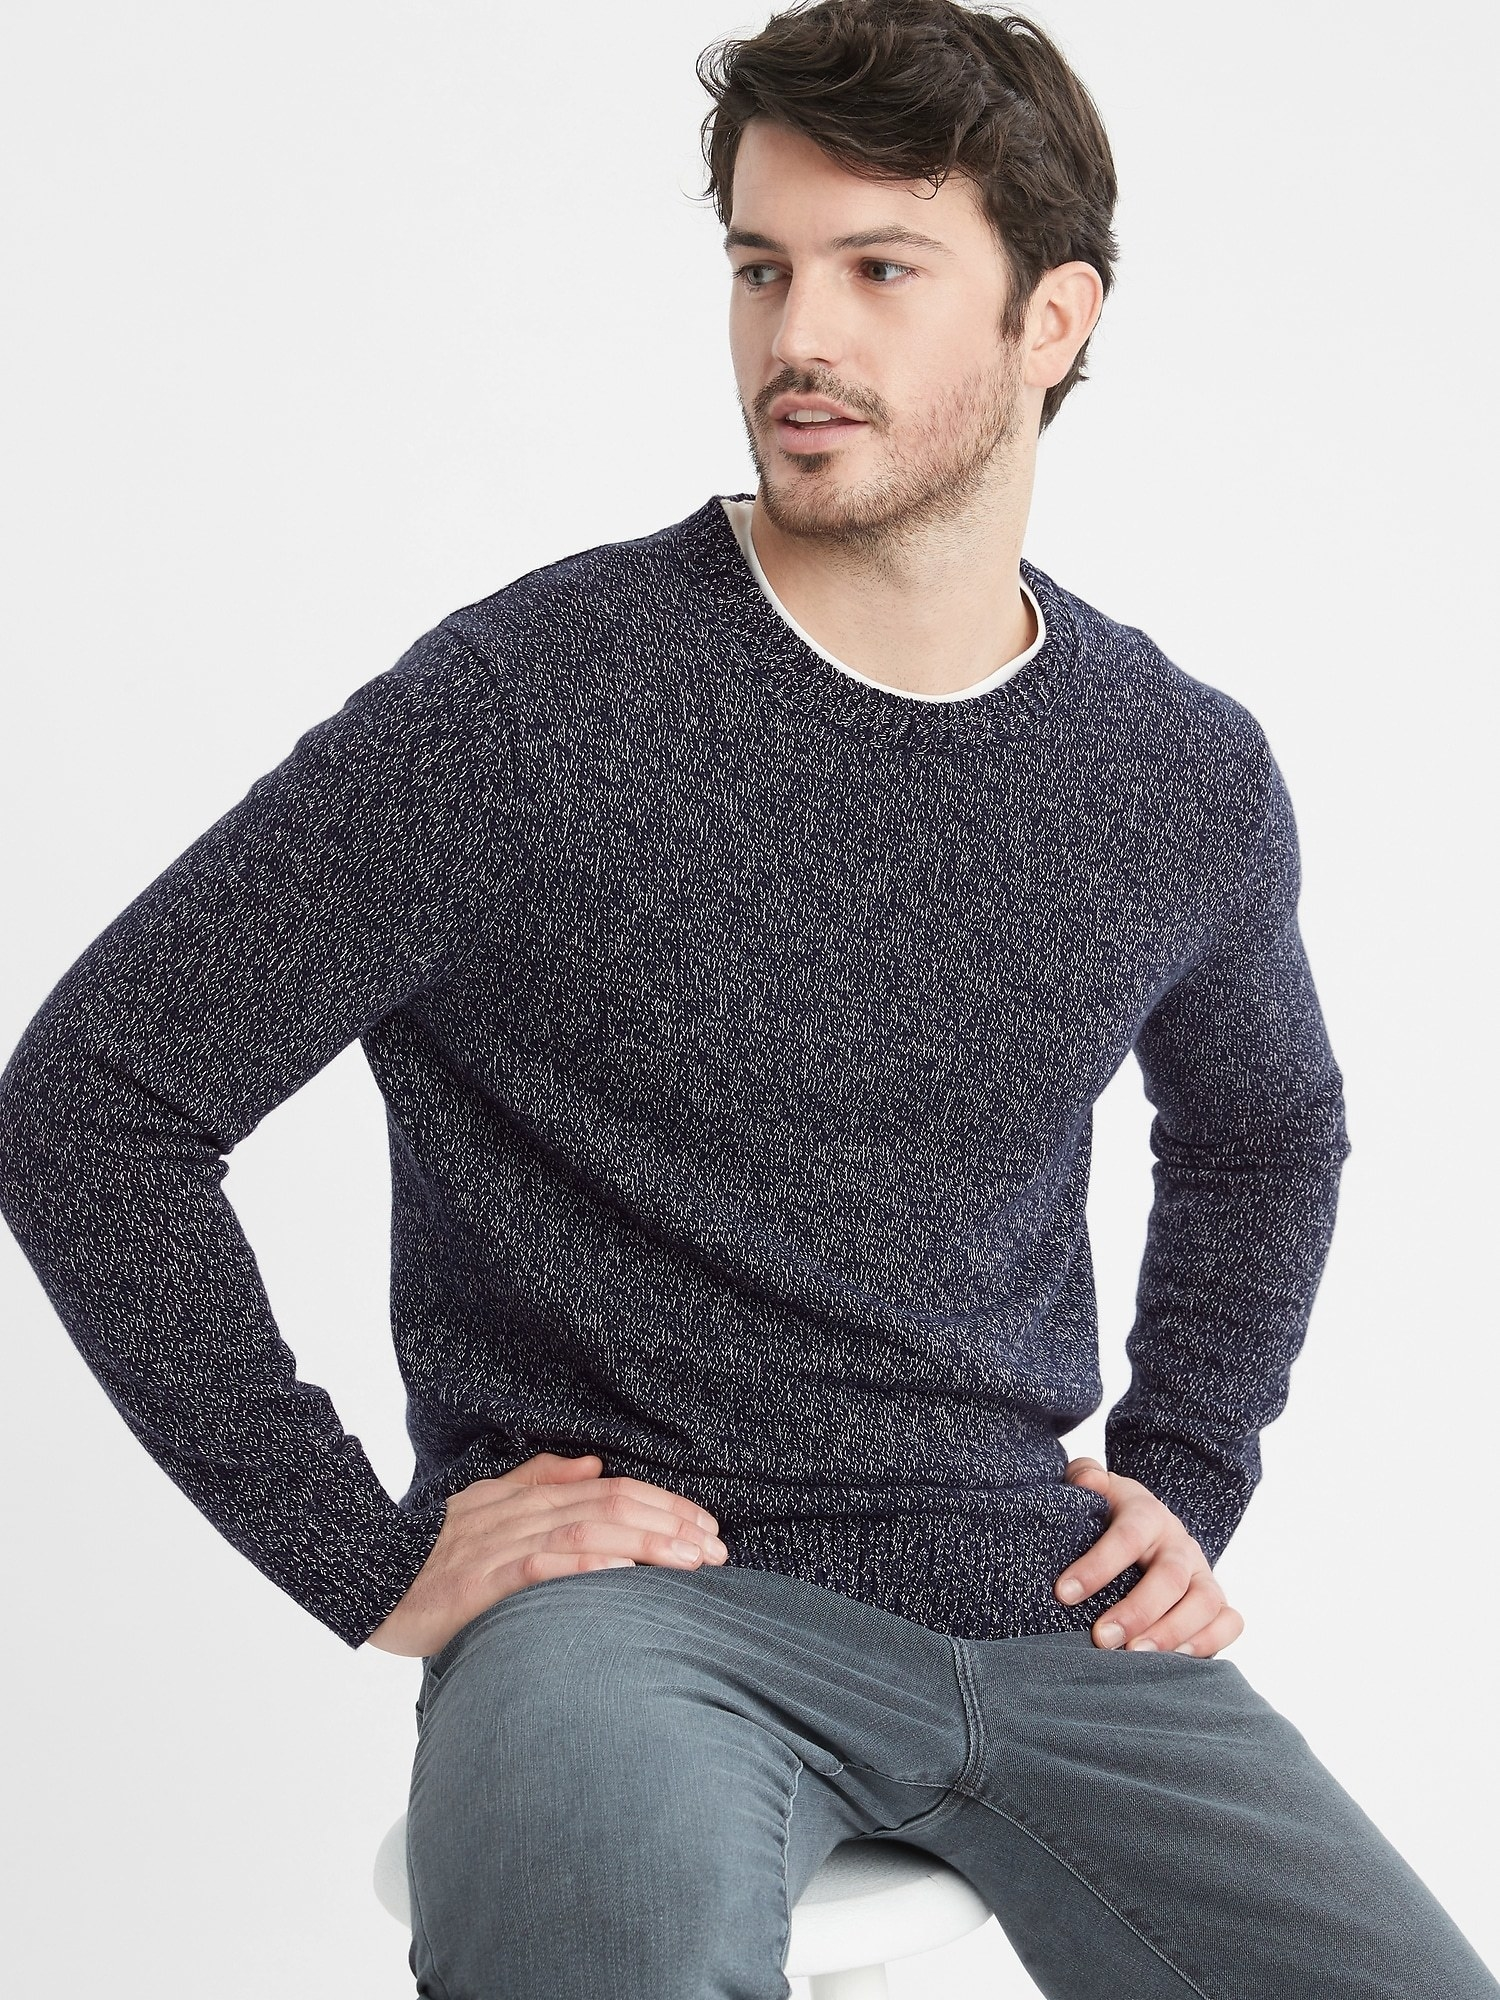 model wearing marled crewneck sweater in midnight navy